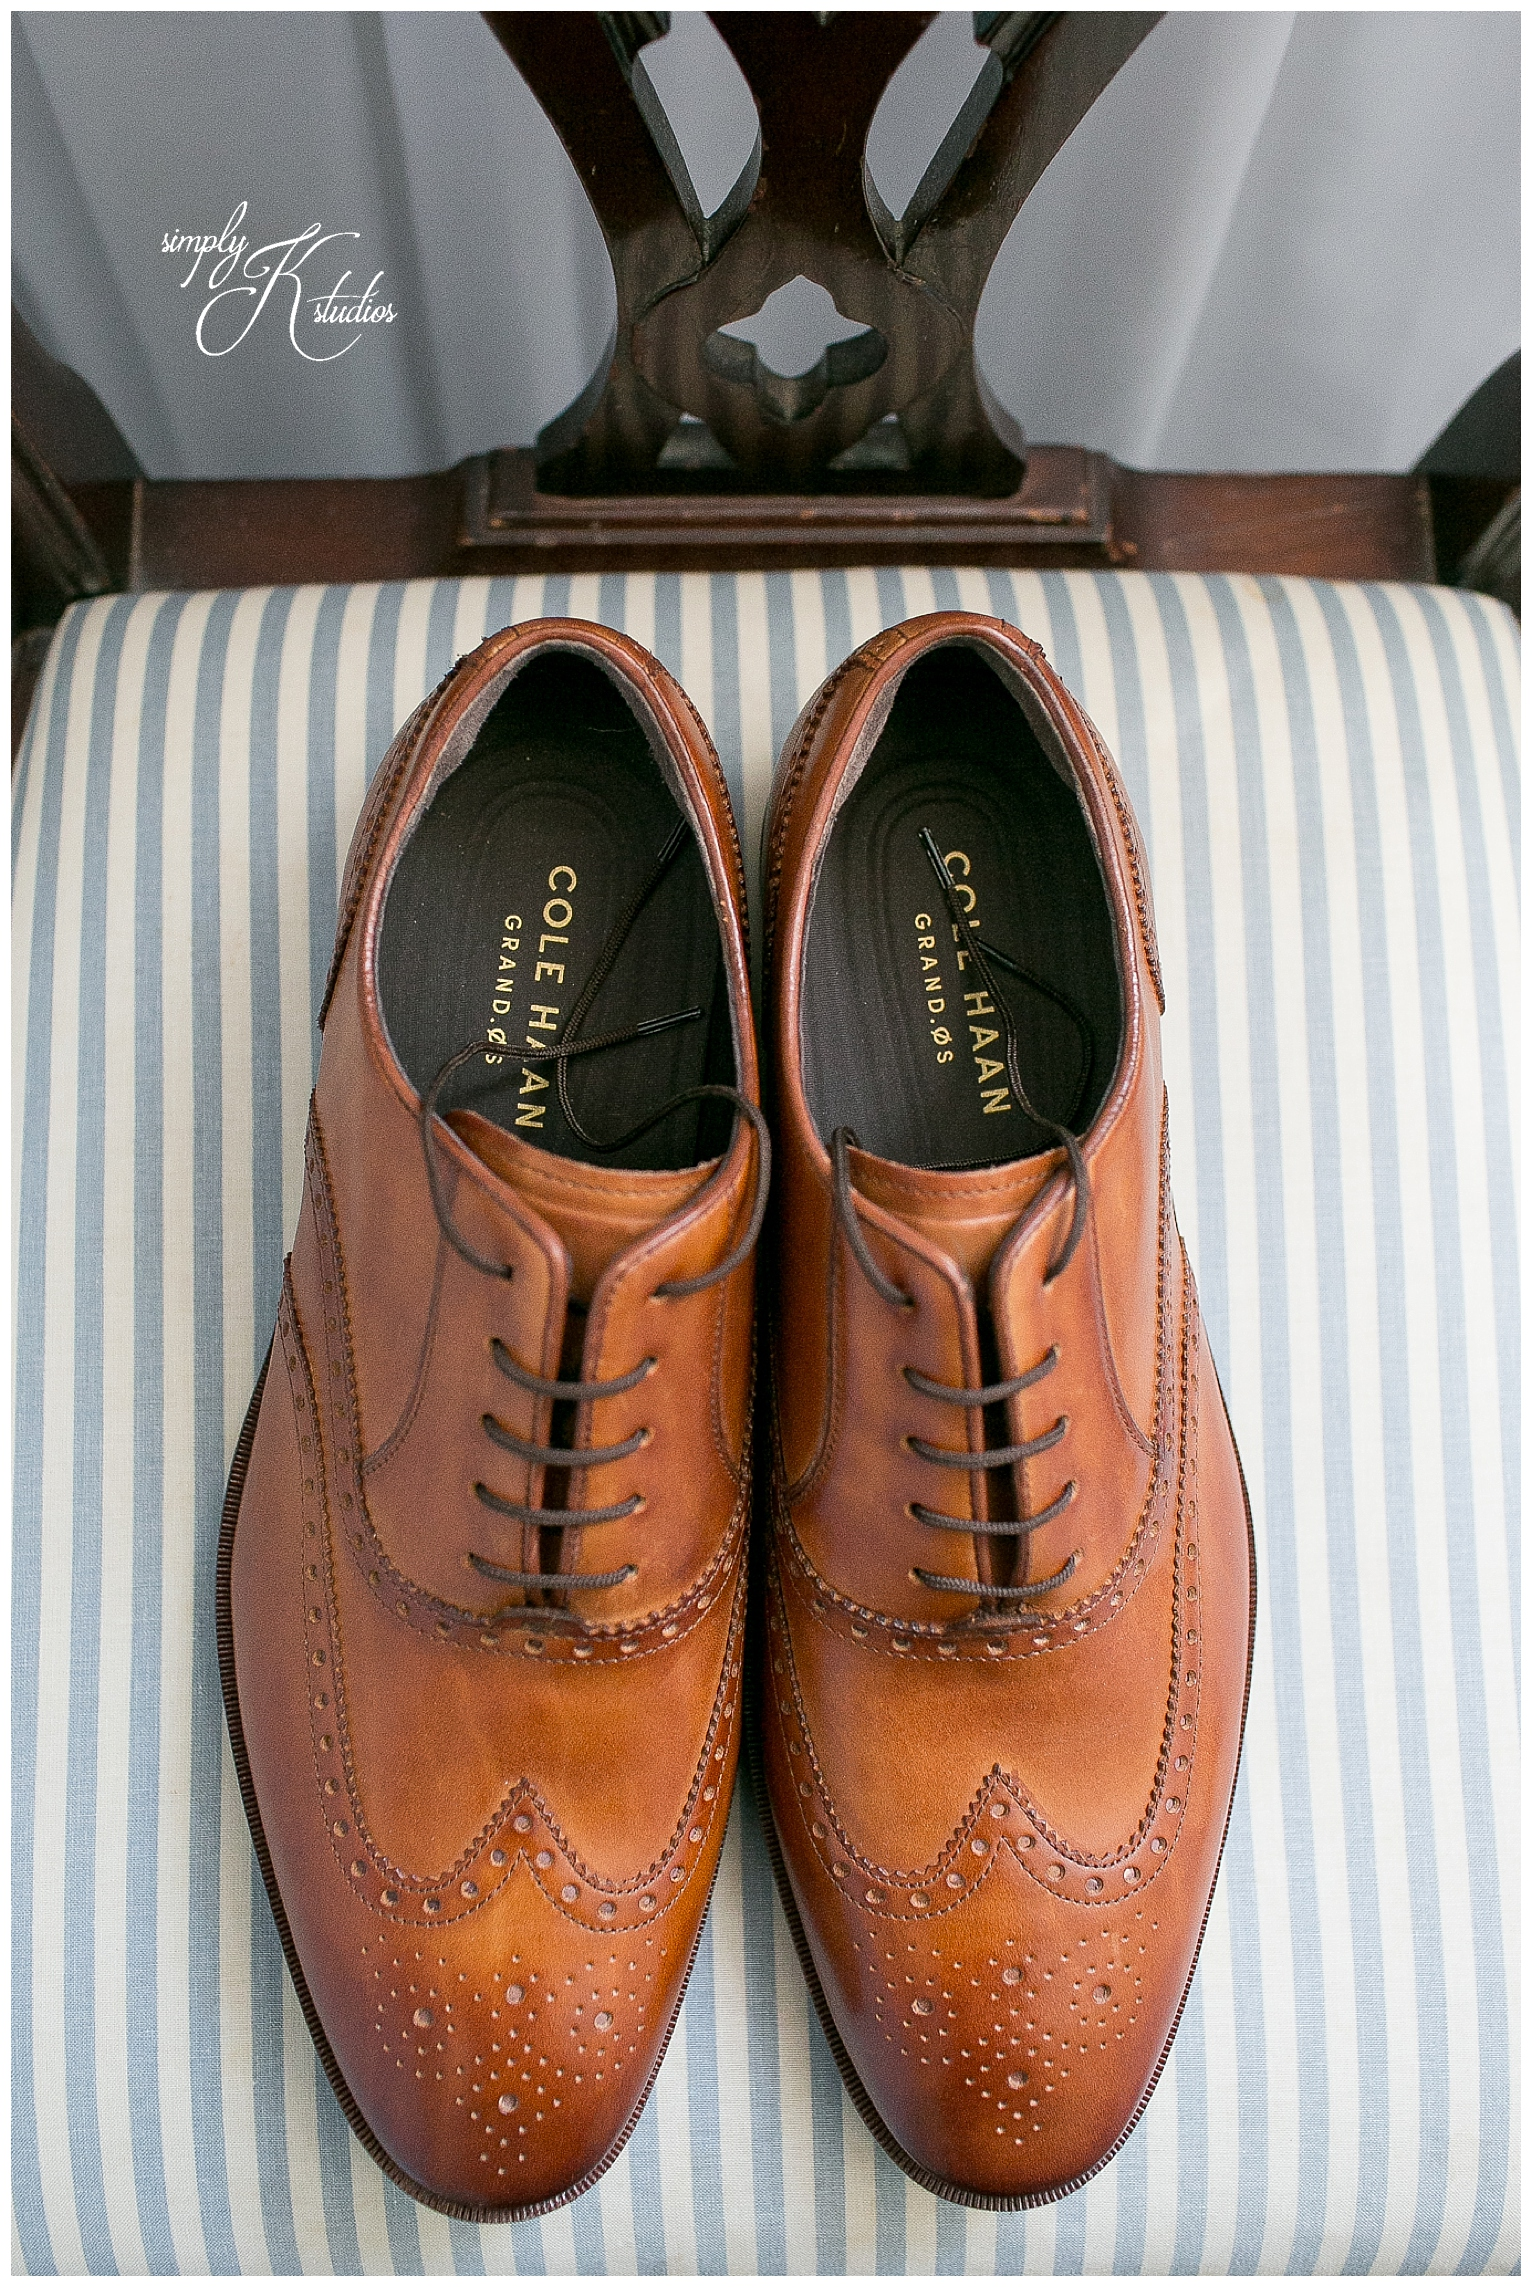 Wedding Shoes for a Groom.jpg